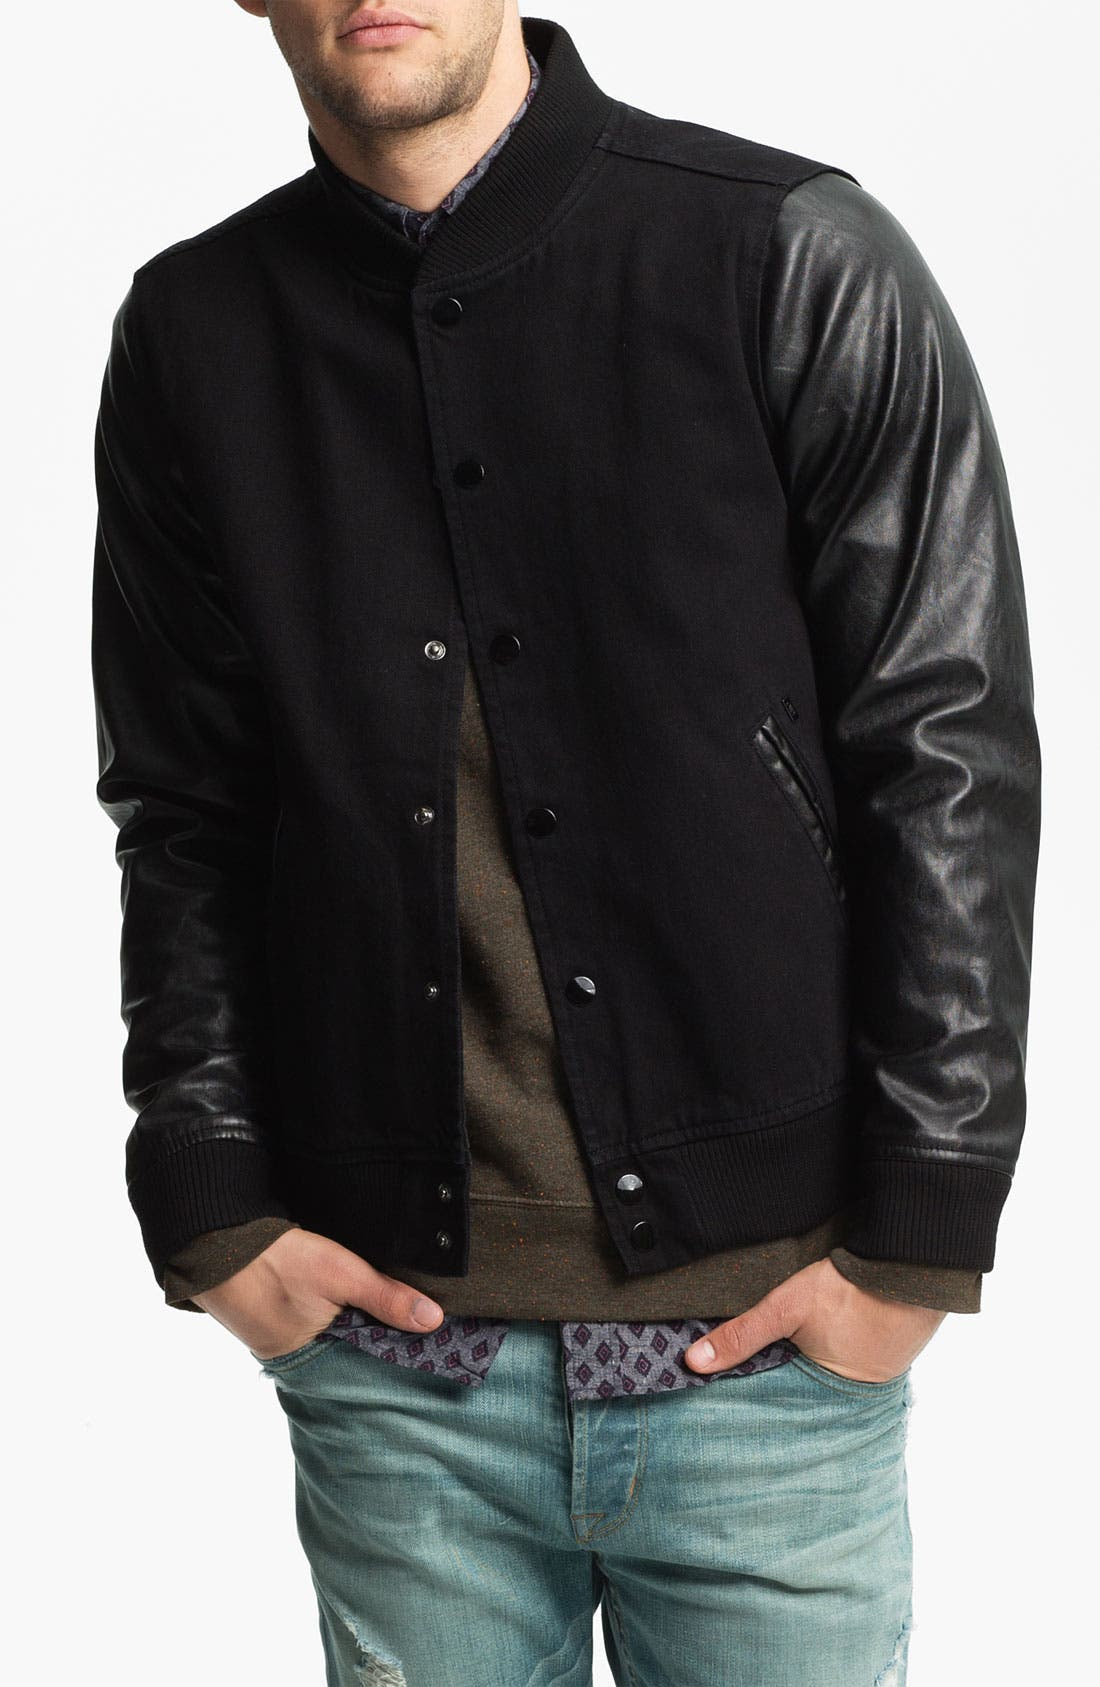 Alternate Image 1 Selected - Obey 'Youth' Varsity Jacket